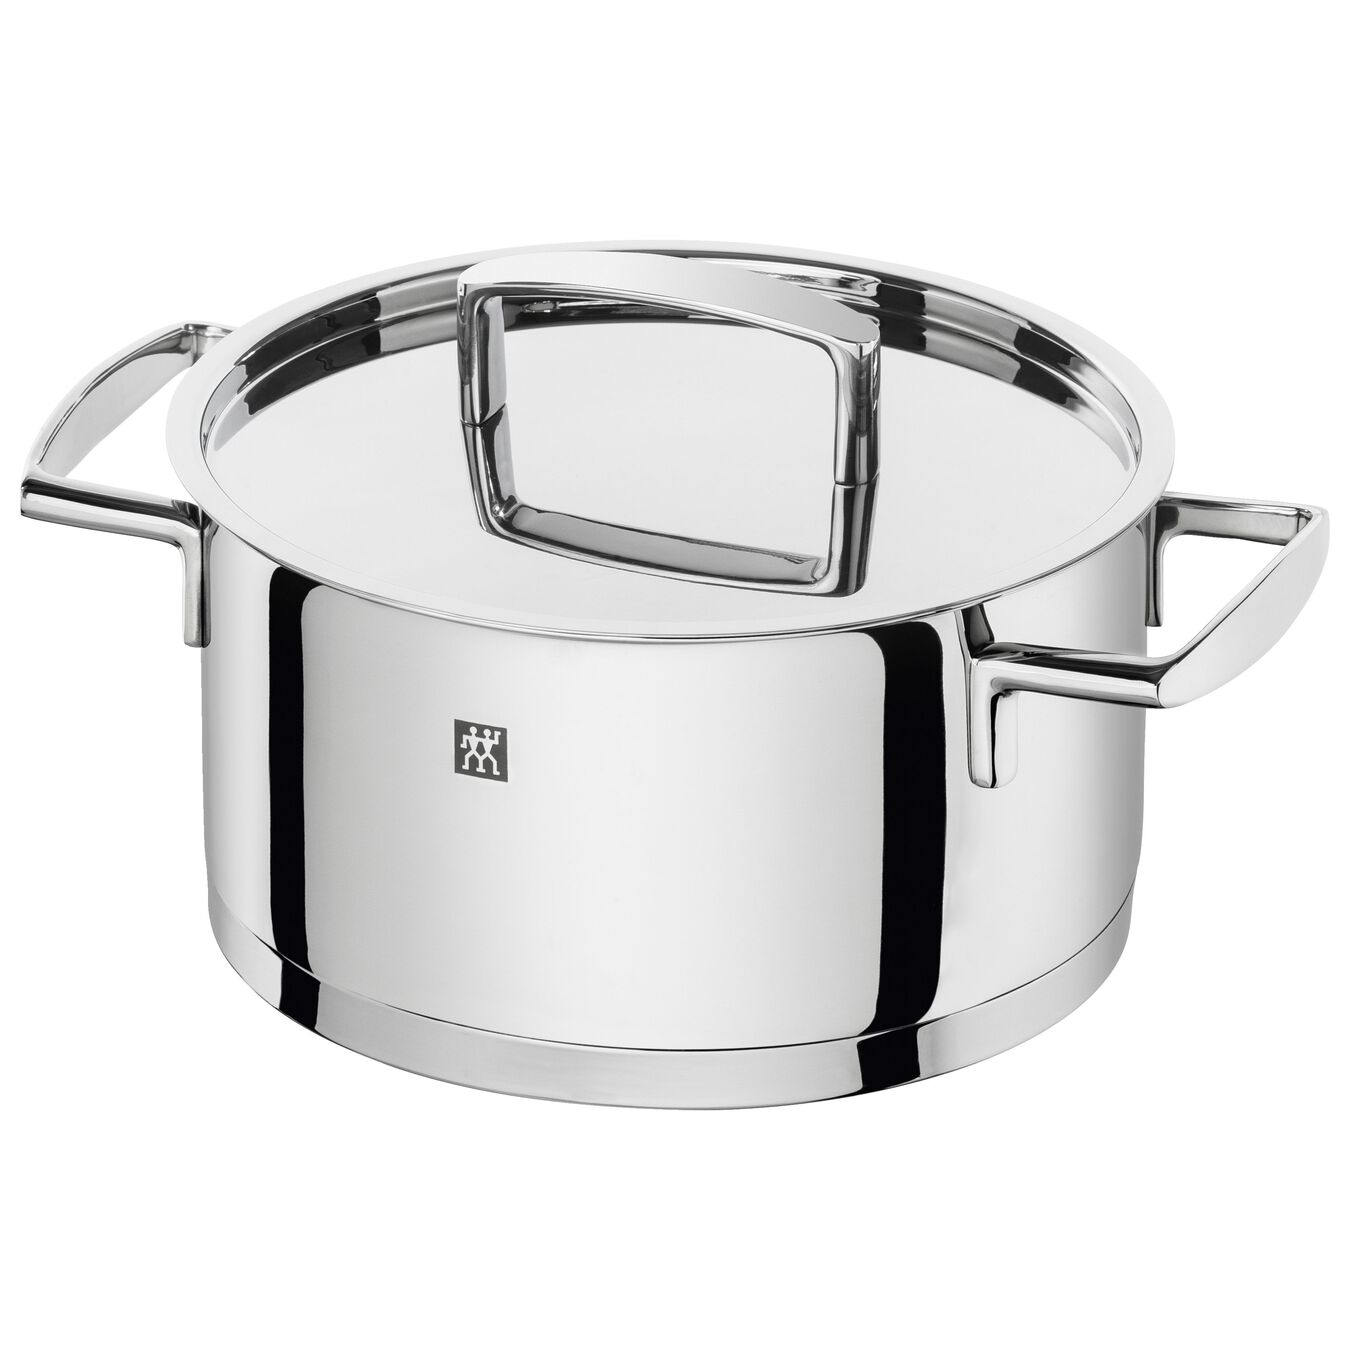 Ensemble de casseroles 5-pcs, Inox 18/10,,large 5